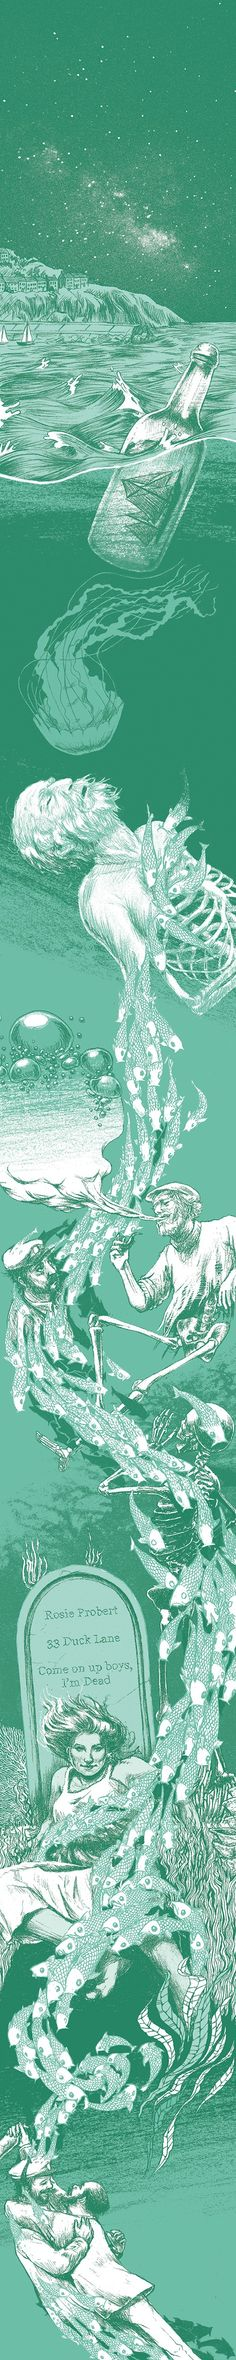 """Based on """"Under Milk Wood"""" a 1954 radio play by Dylan Thomas. Illustrated by Madeleine Rose"""